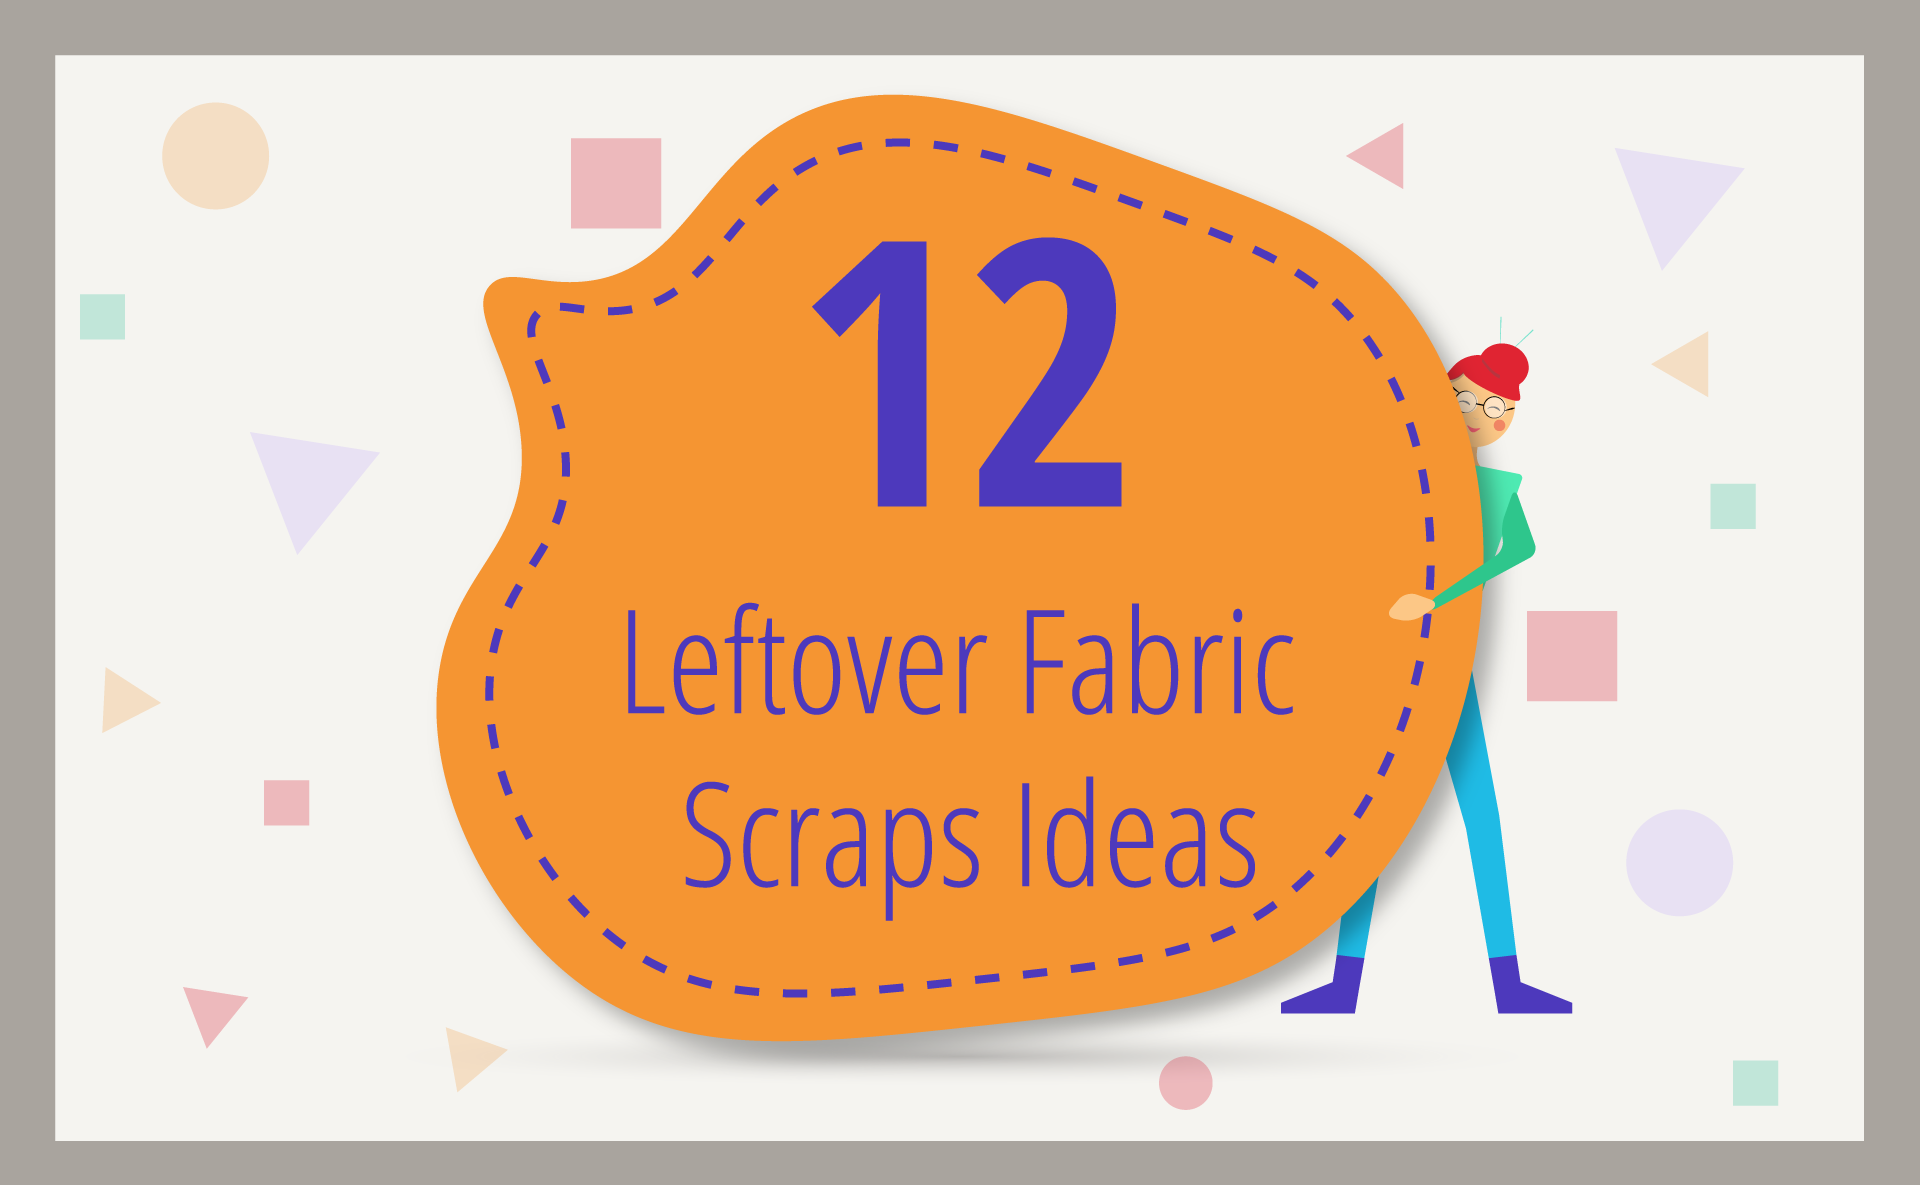 12 Leftover Fabric Scraps Ideas